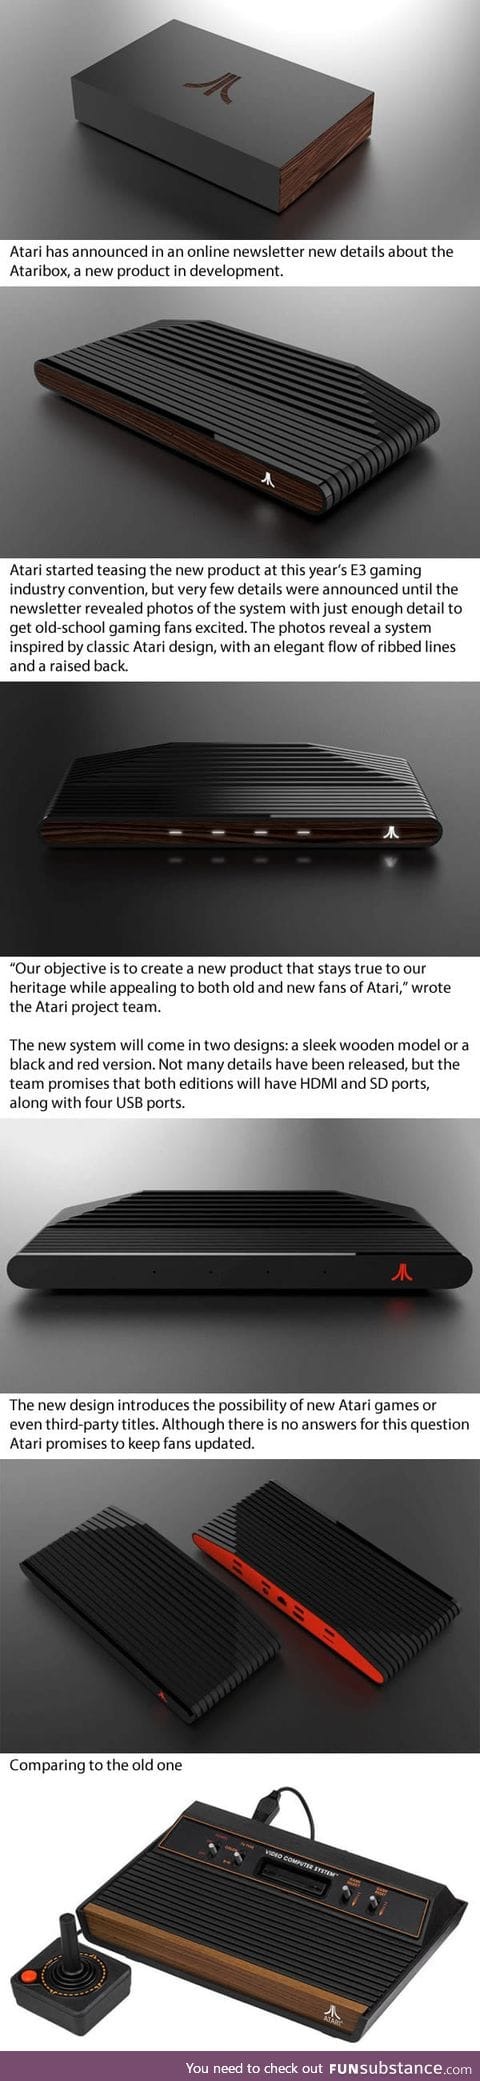 Atari is releasing its first console in more than 20 years